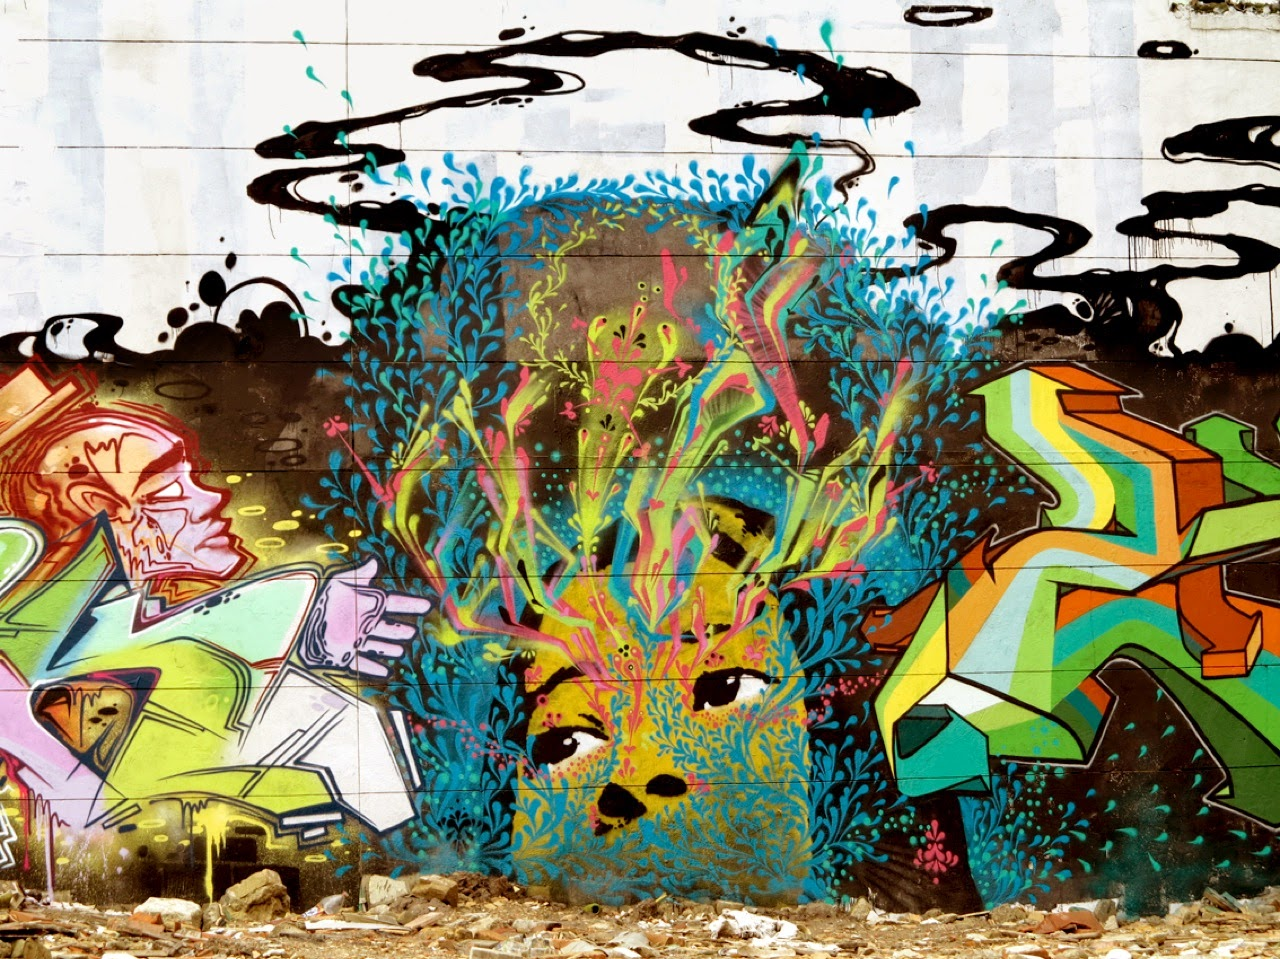 Last seen in Miami a few weeks ago (covered), Stinkfish is now back in Colombia where he worked on two new collaborations on the streets of Bogota.